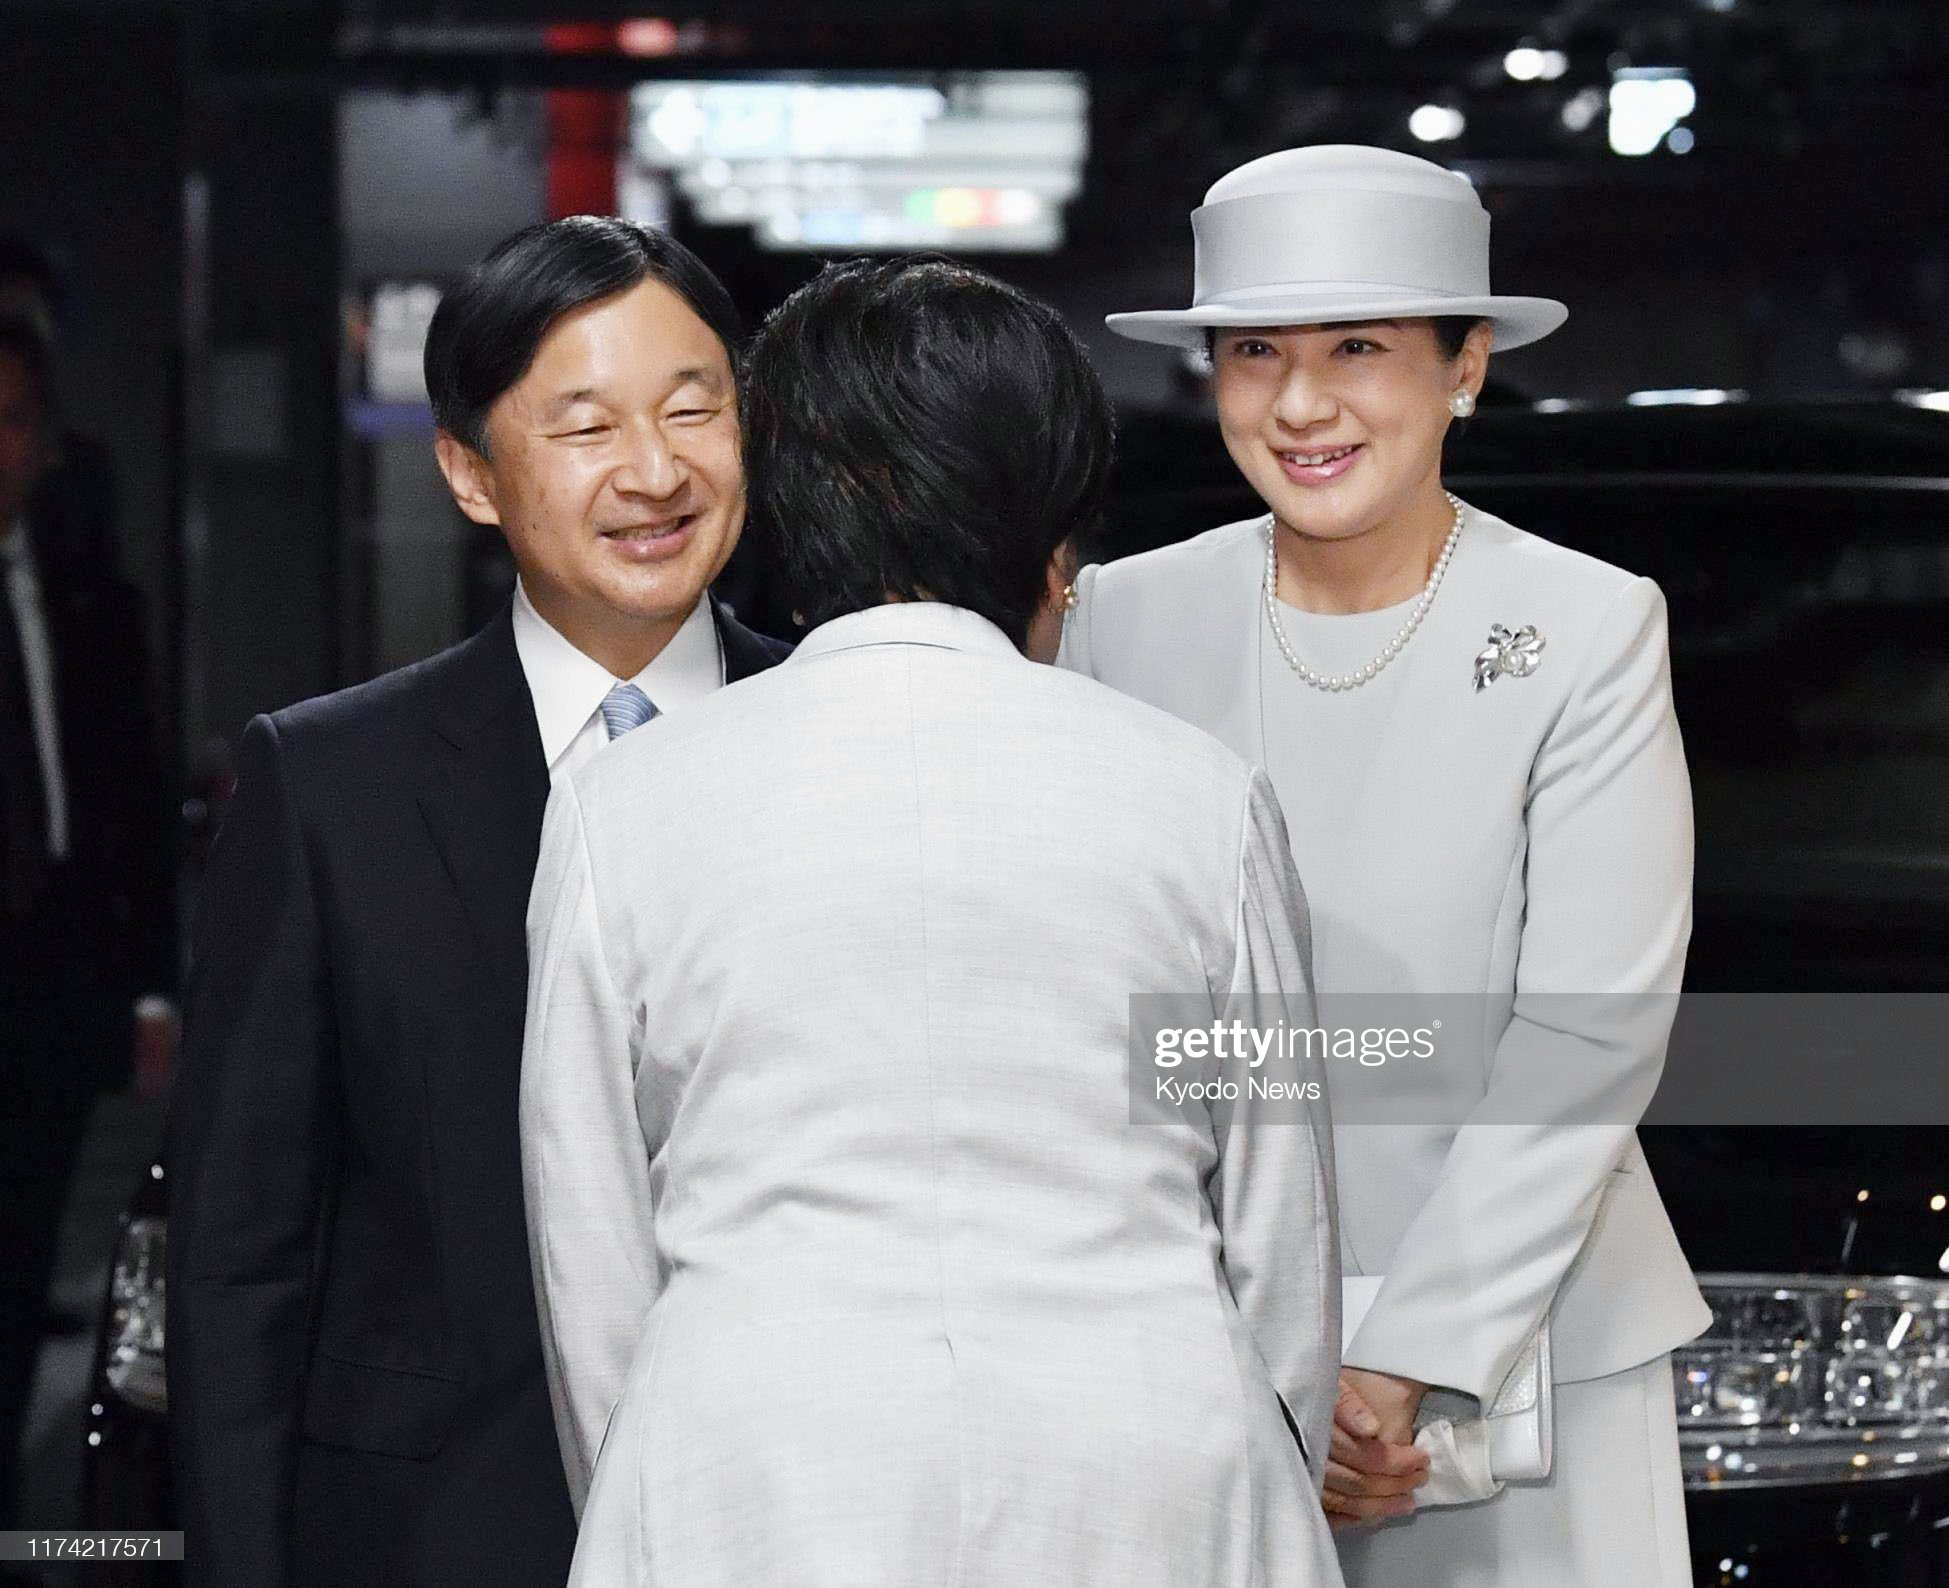 japanese-emperor-naruhito-and-empress-masako-are-welcomed-by-tokyo-picture-id1174217571